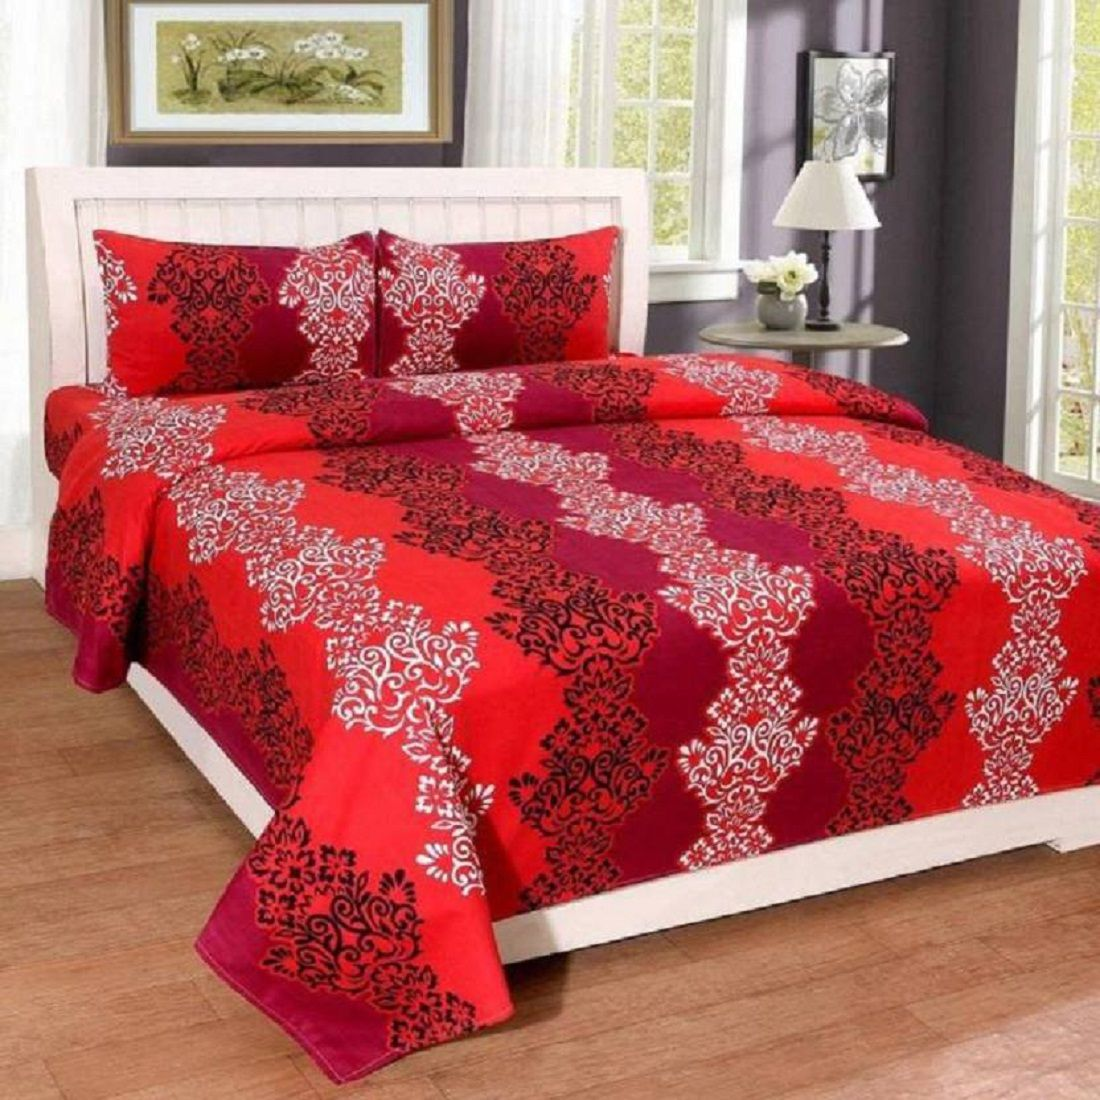 New panipat textile zone Microfibre Double Bedsheet with 2 Pillow Covers